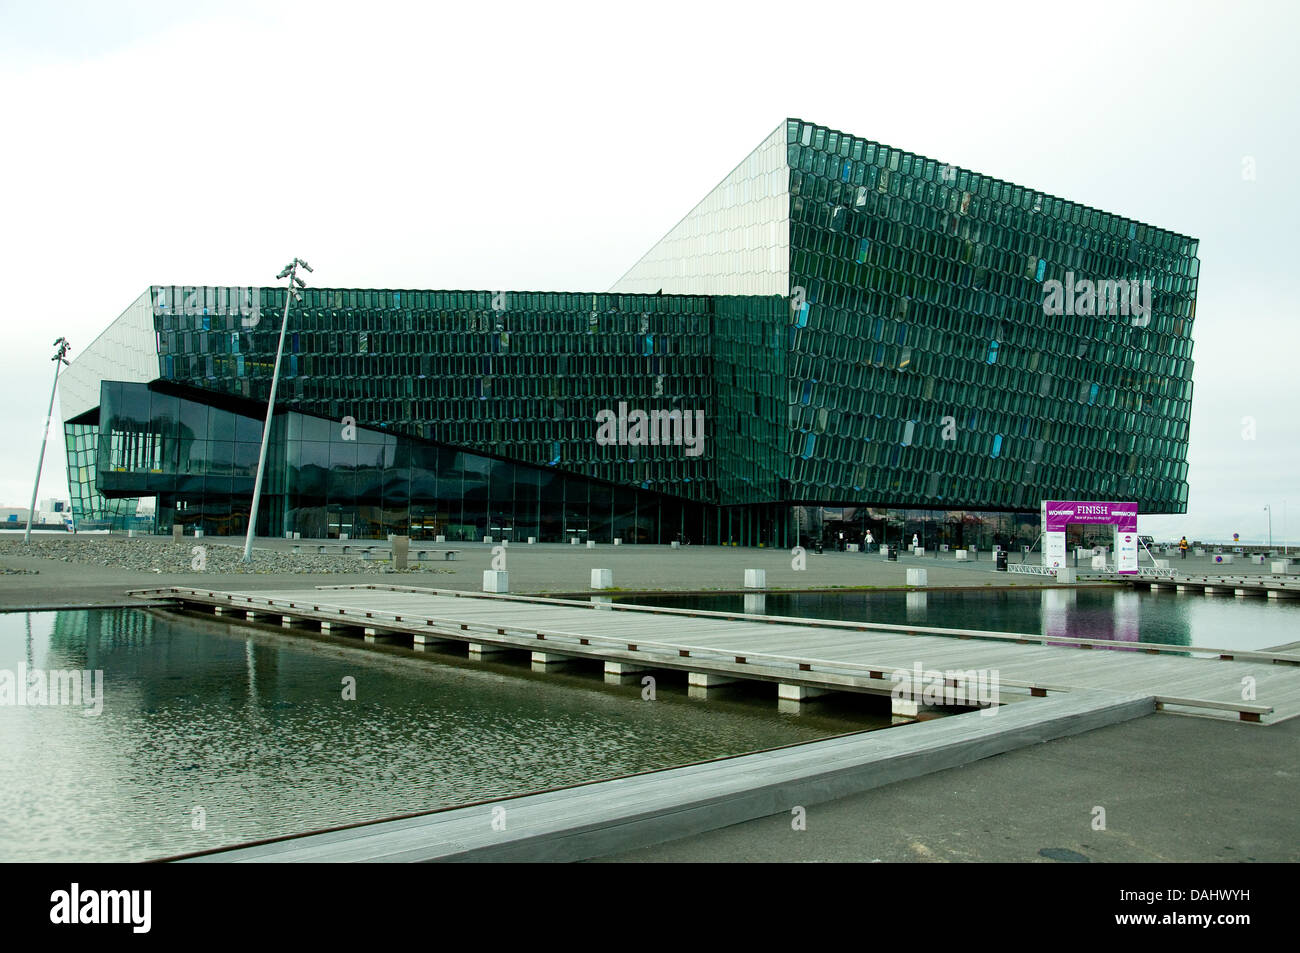 Reykjavik's controversial concert hall, Harpa. won a major E.U. award in 2013 for contemporary architecture - Stock Image